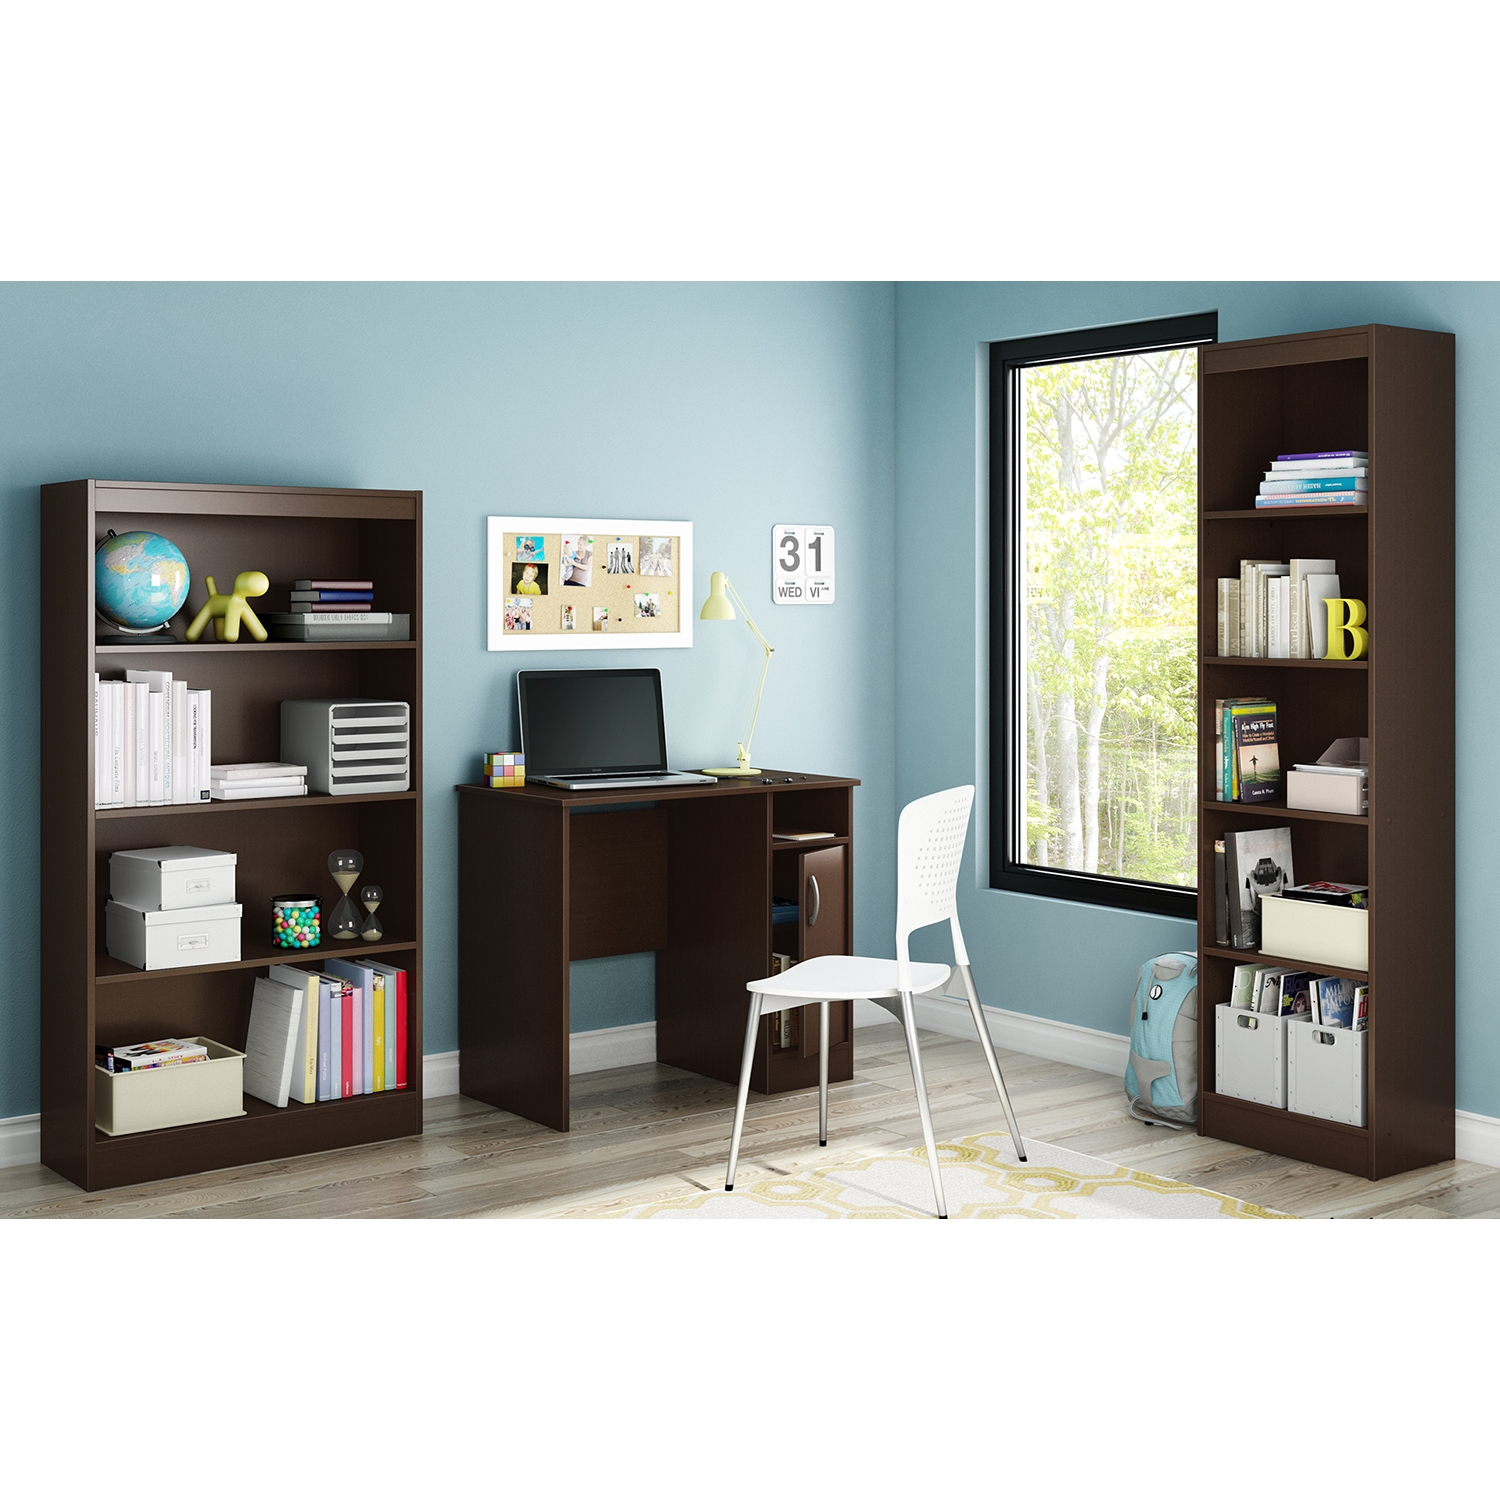 Axess Small Desk - Chocolate - SS-7259075